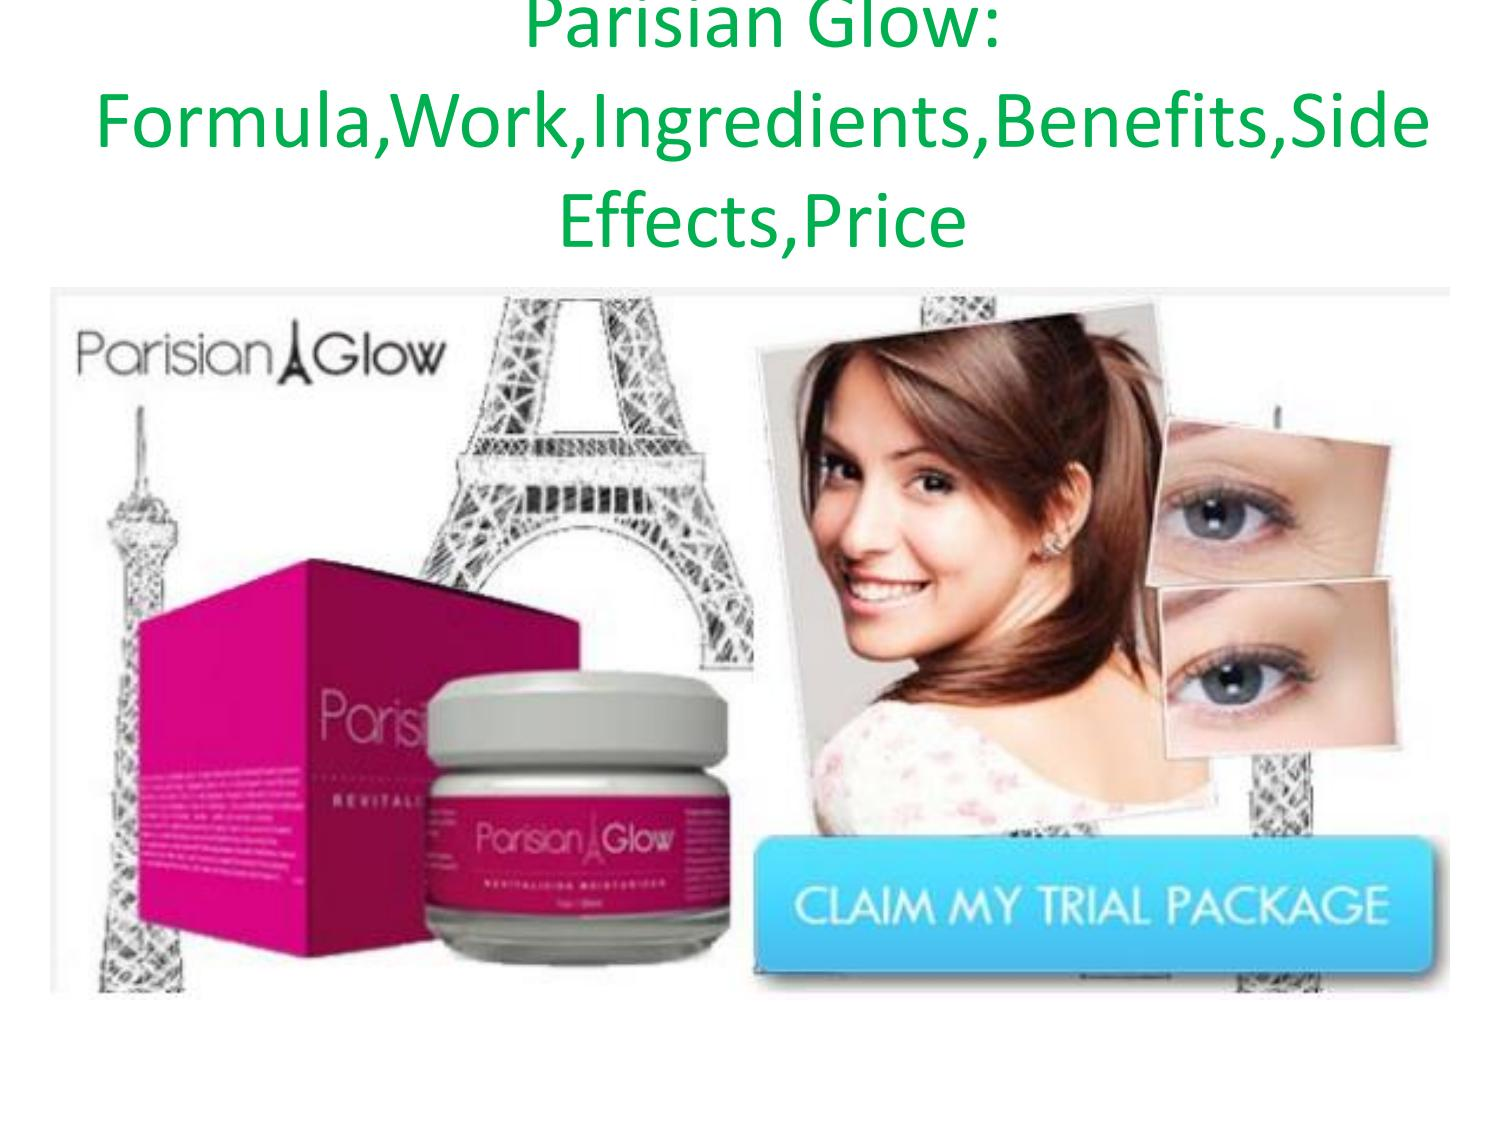 Parisian Glow Skin >> Http Www Healthboostup Com Parisian Glow Skin By Sophie Young Issuu